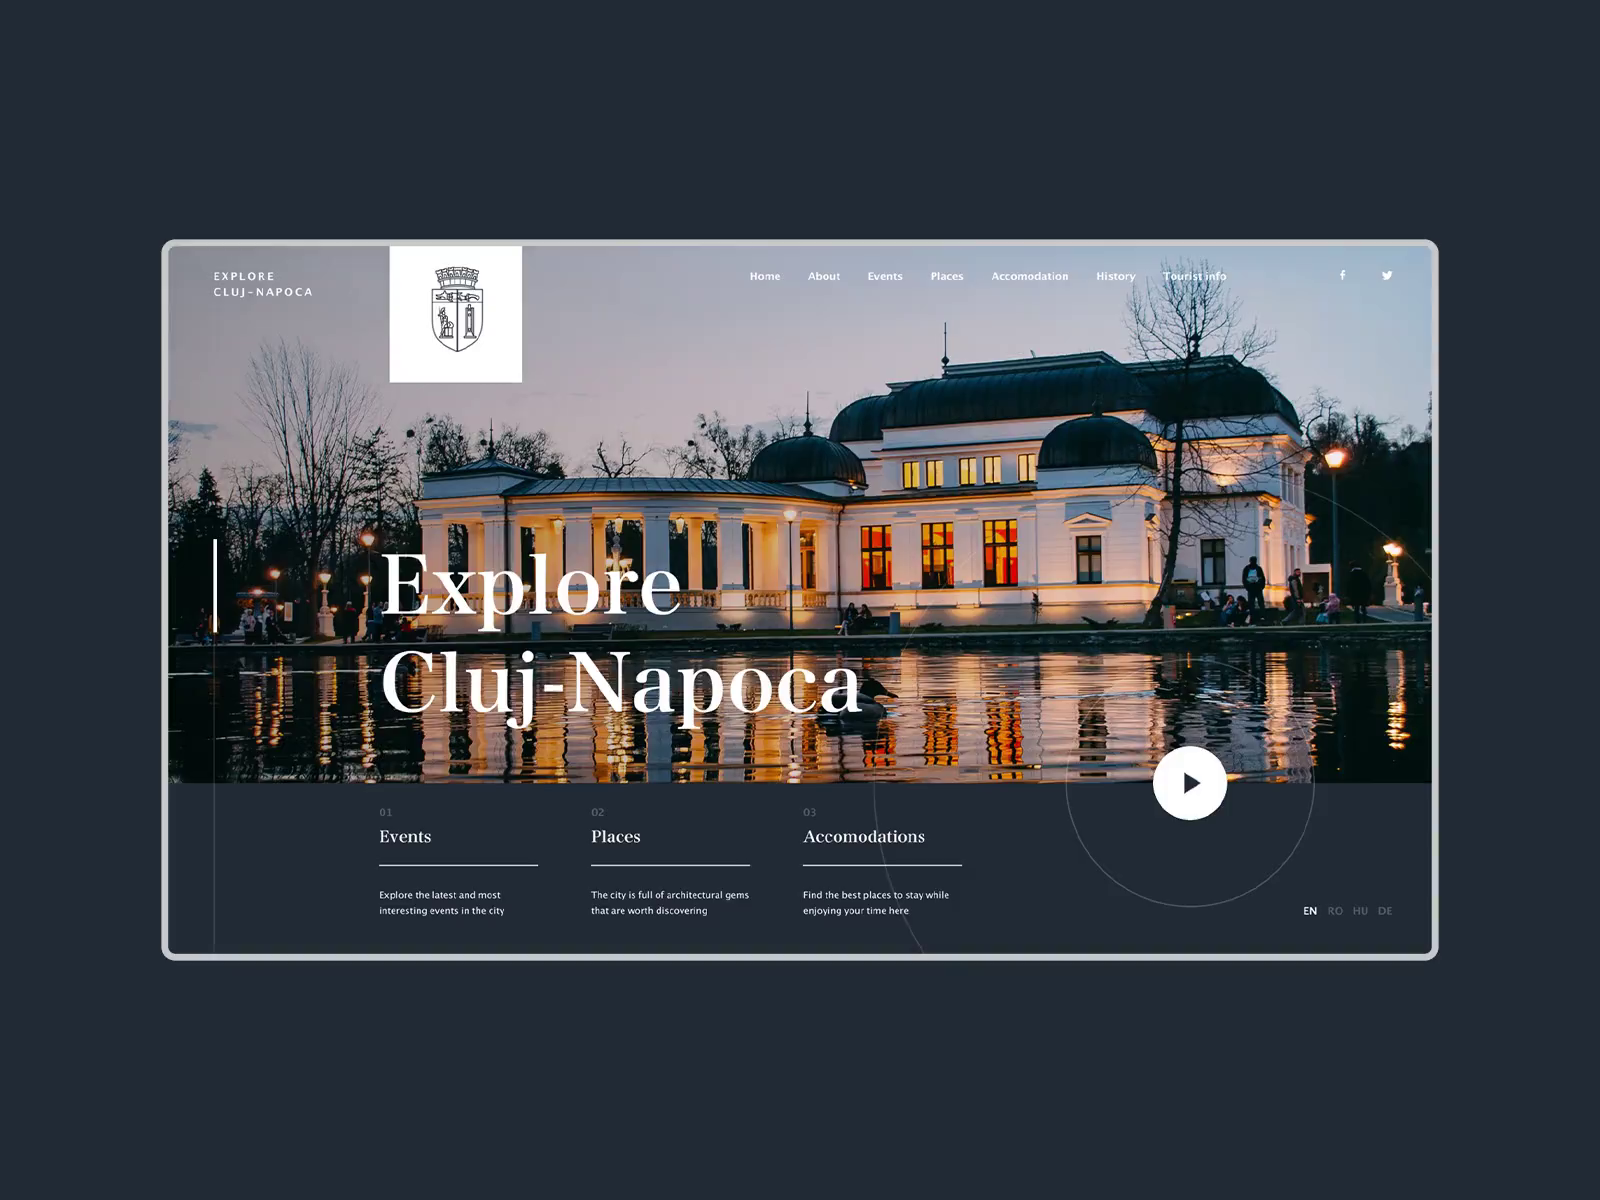 Explore Cluj Website Concept By Barna Erdei In 2020 Events Place Explore Cluj Napoca